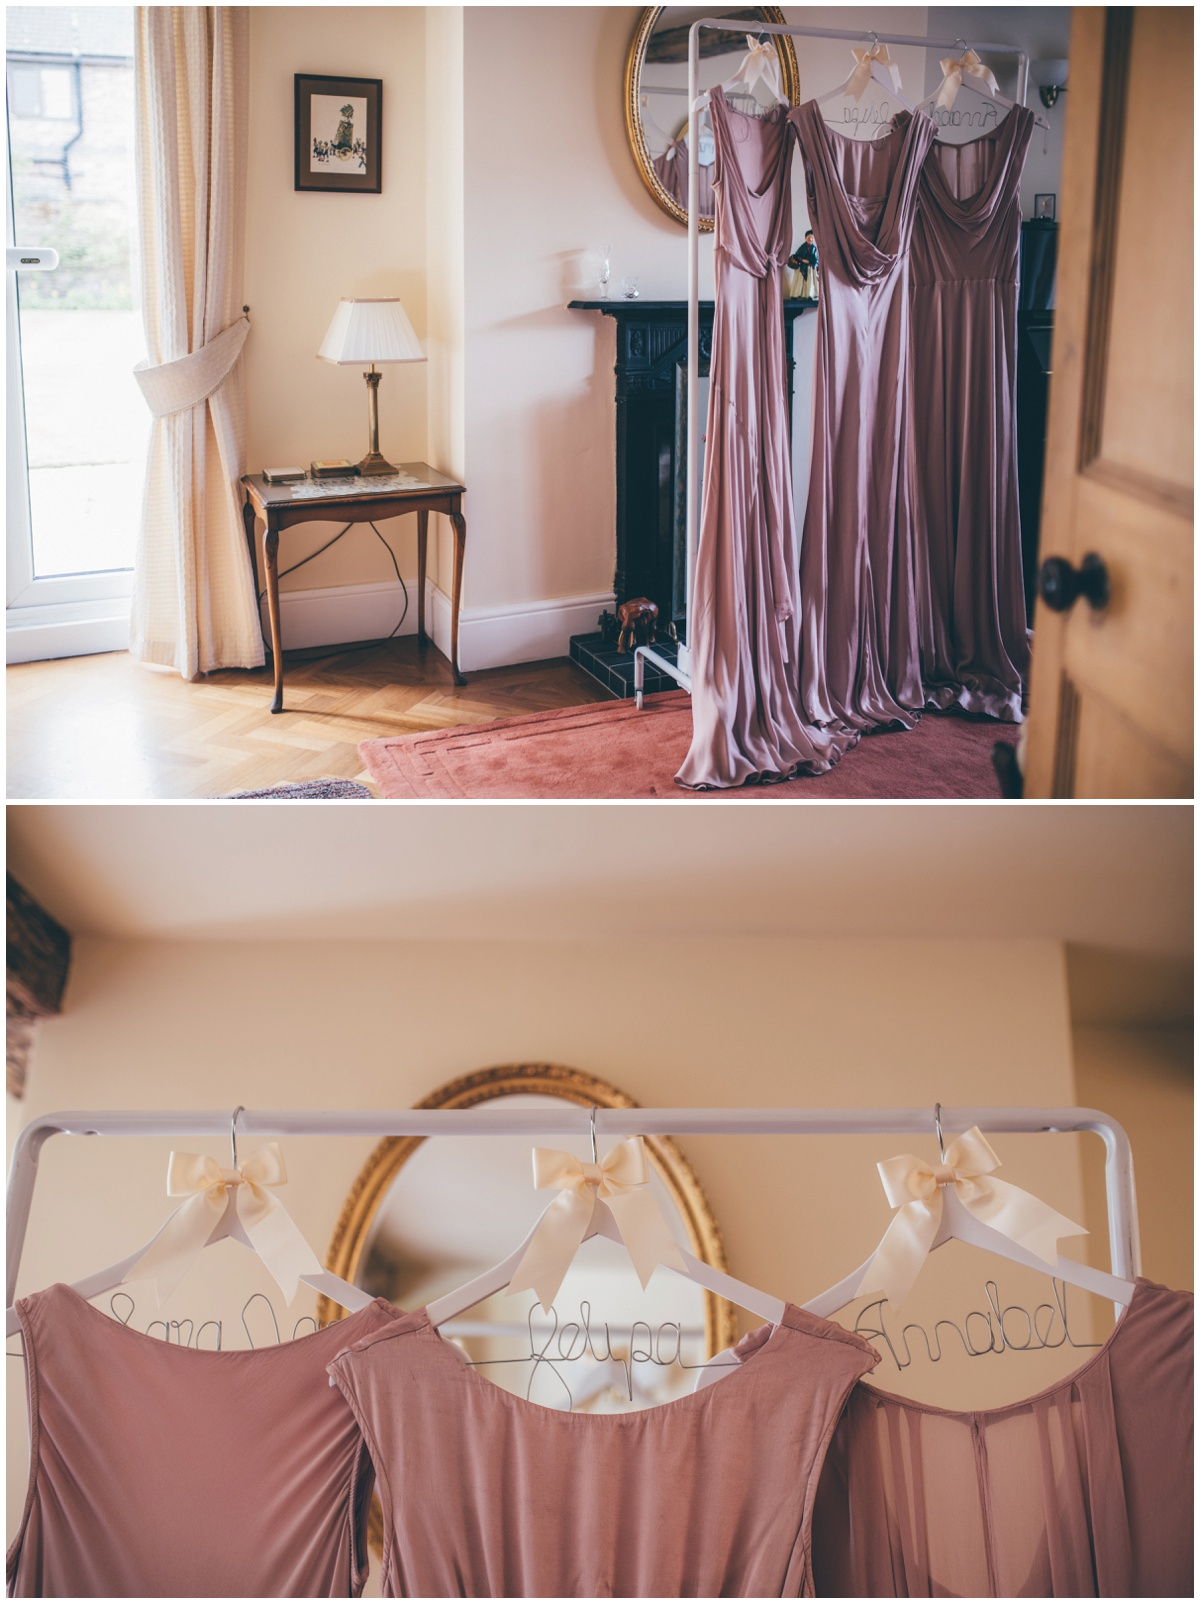 Beautiful duskiy pink bridemaid dresses with personalised hangers.